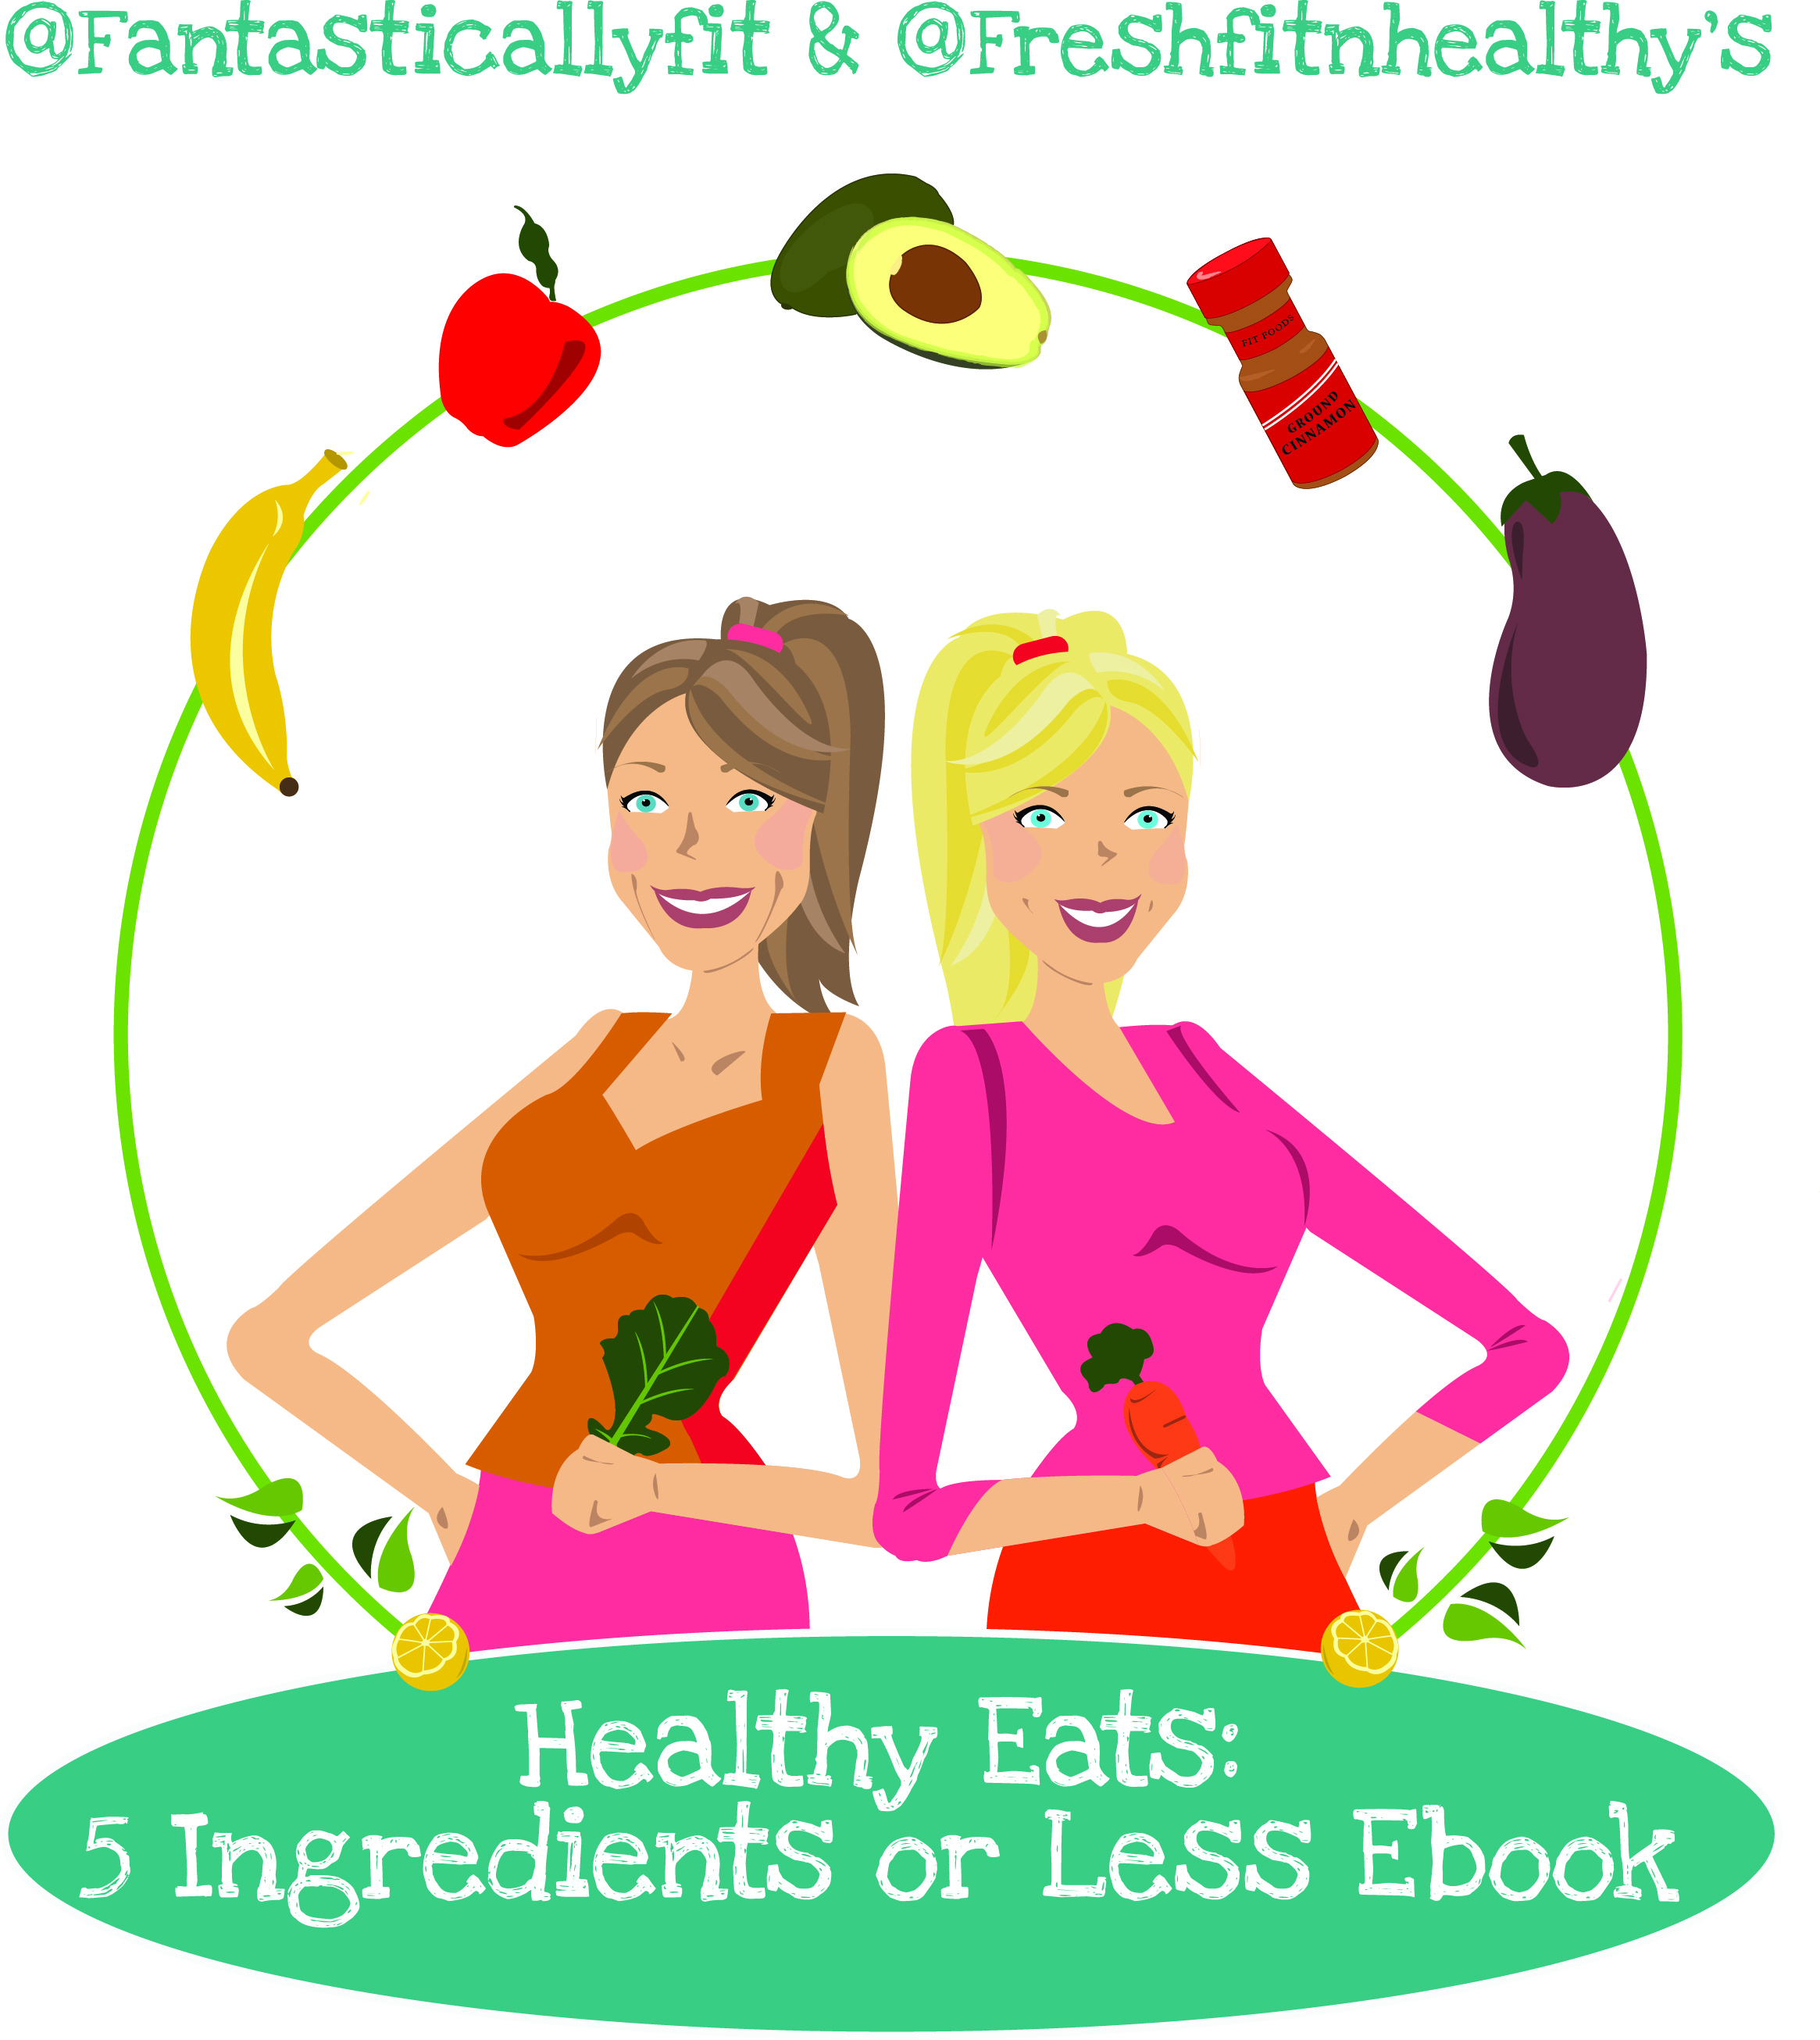 Ebook - 5 Ingredients or Less